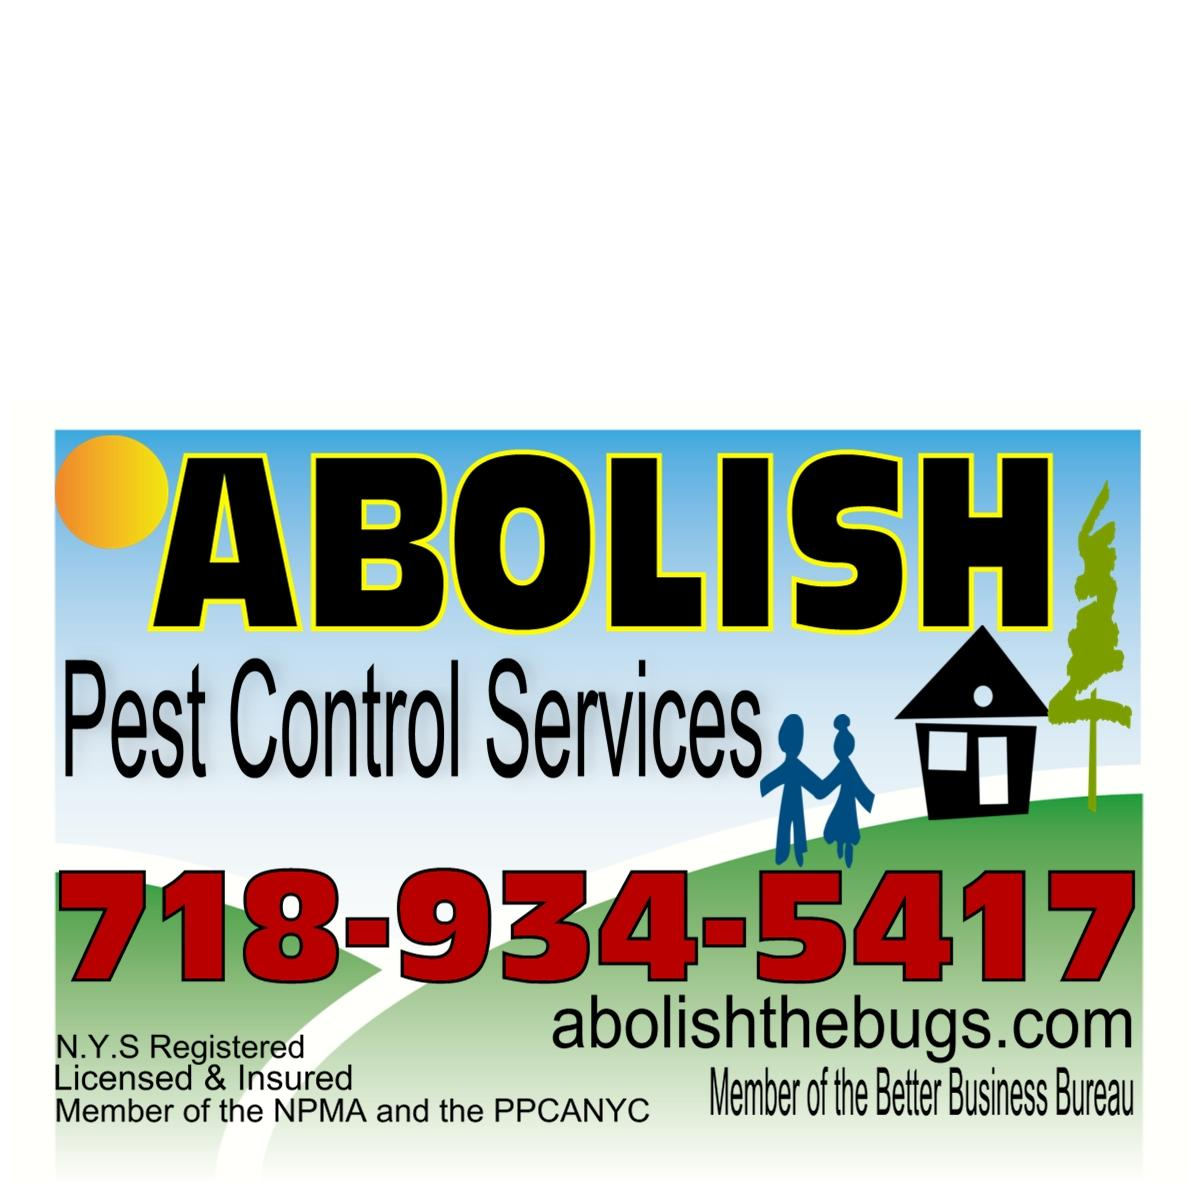 Abolish Pest Control Inc.